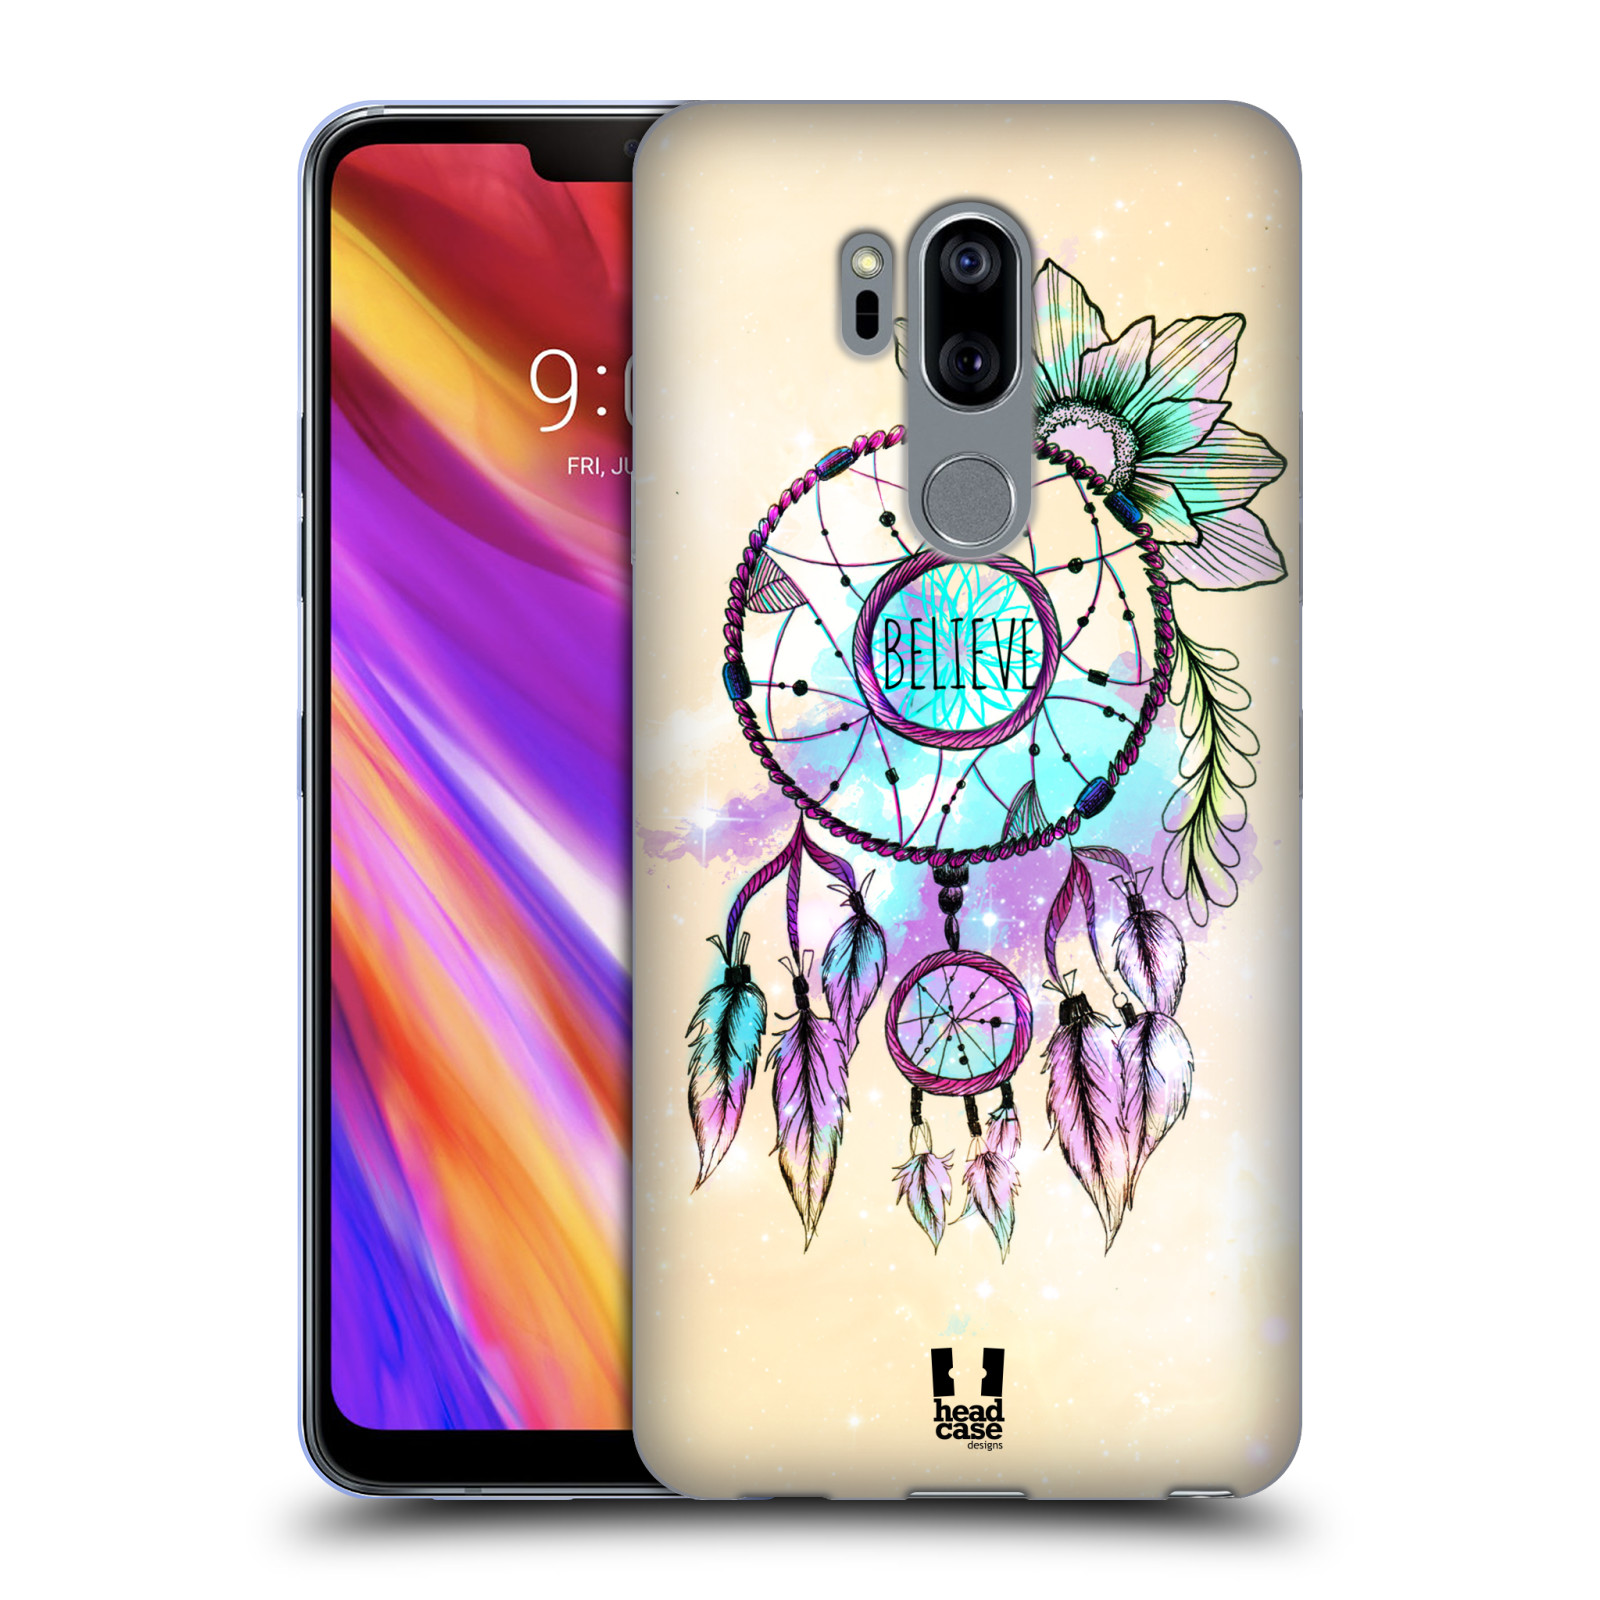 Silikonové pouzdro na mobil LG G7 ThinQ - Head Case - MIX BELIEVE